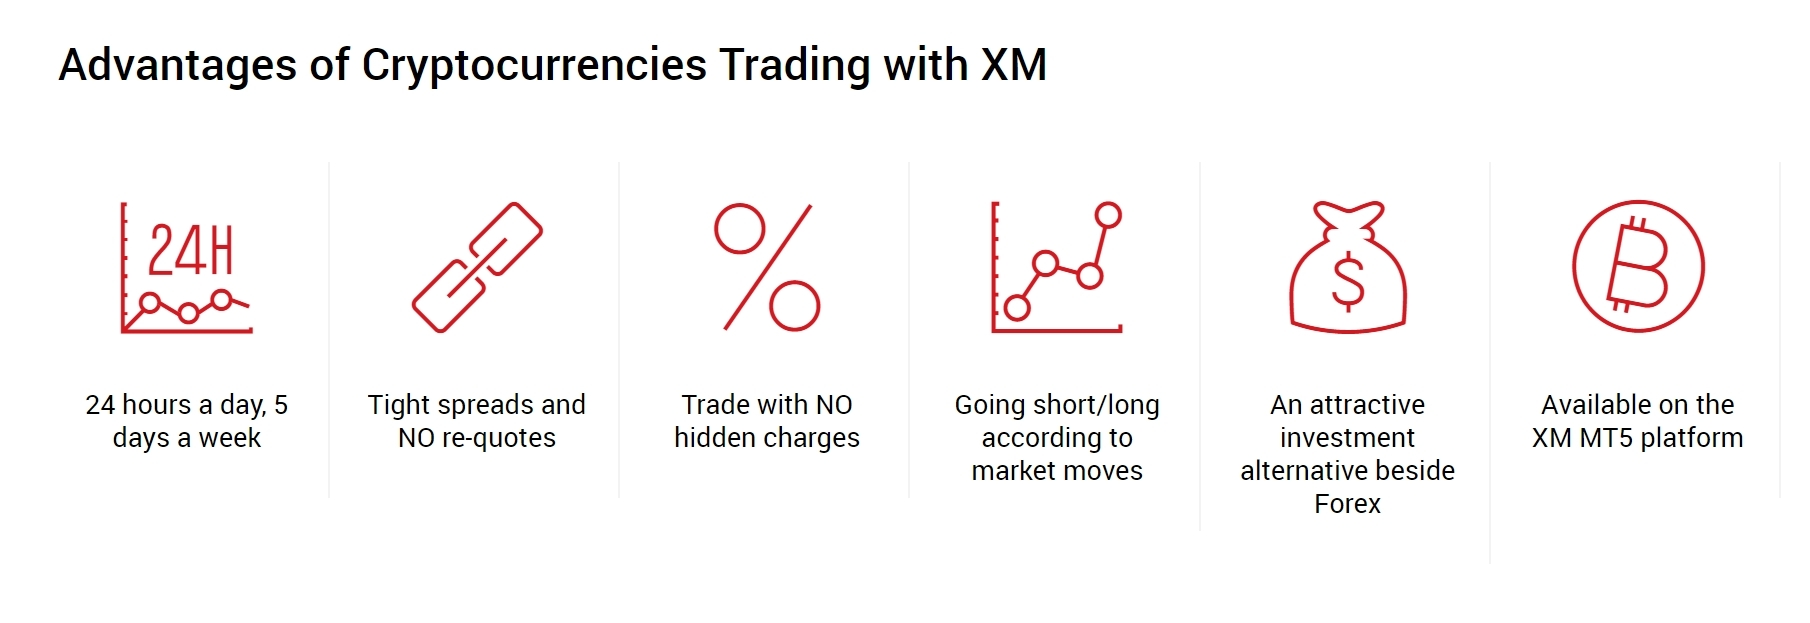 XM Cryptocurrency Trading